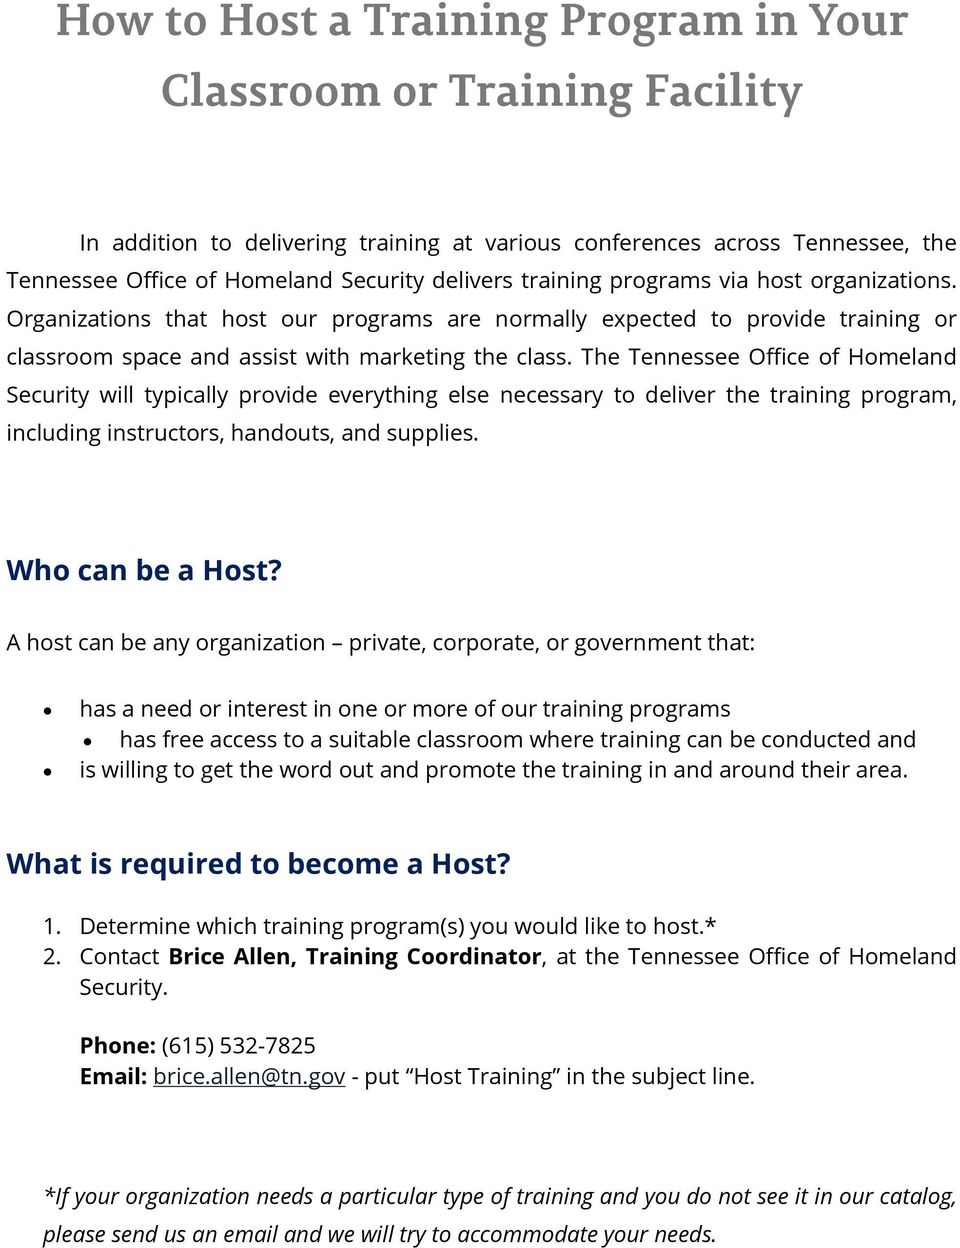 The Tennessee Office of Homeland Security will typically provide everything else necessary to deliver the training program, including instructors, handouts, and supplies. Who can be a Host?